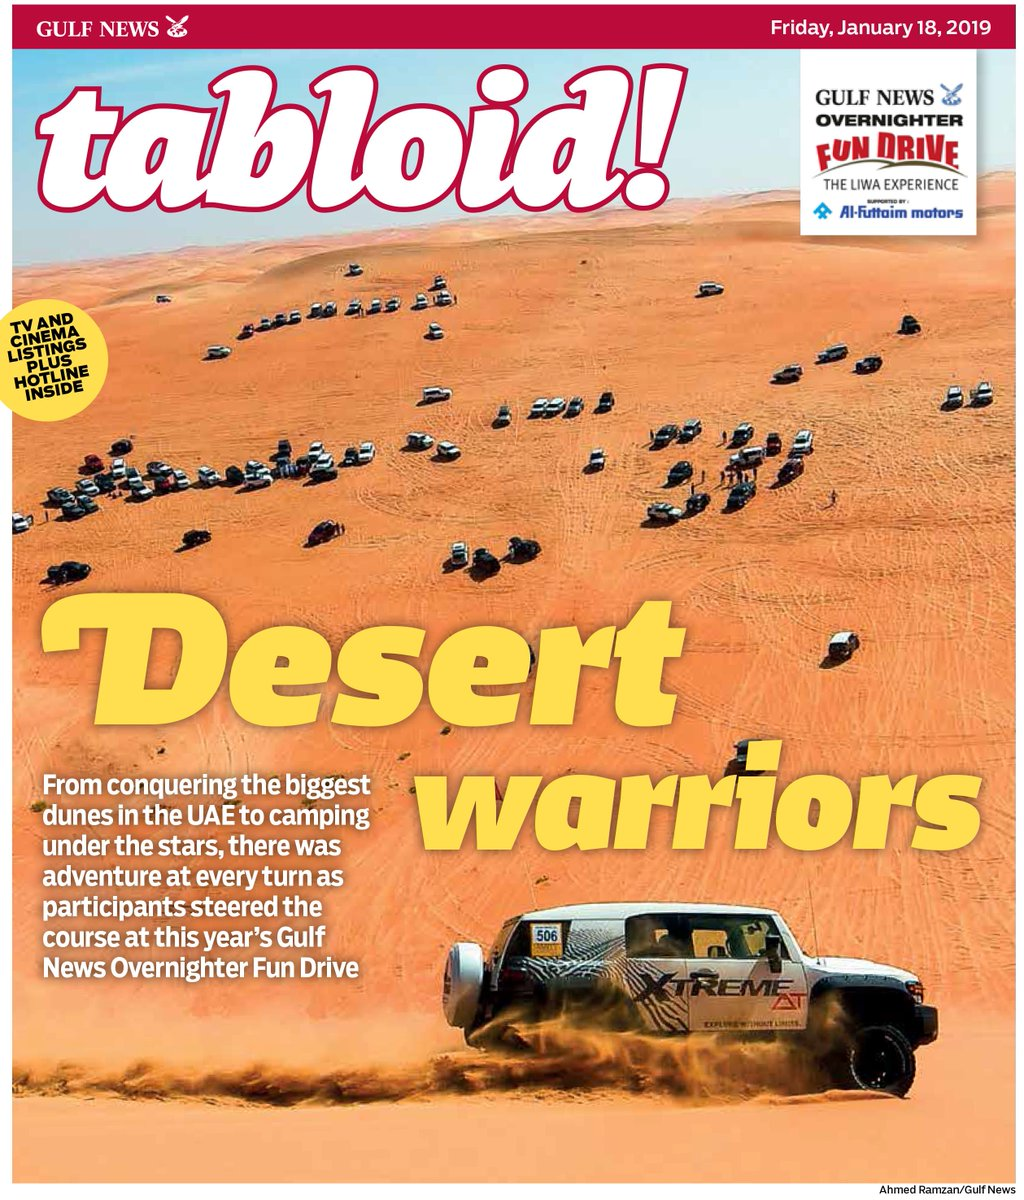 Team spirit was celebrated at this year's #GulfNewsFunDrive #TheLiwaExperience, where thrill seekers drove into the Empty Quarter, #AbuDhabi to conquer the biggest dunes in the #UAE. Grab today's special edition for all that went down. #TabloidCover   https://t.co/kosL2USKJm